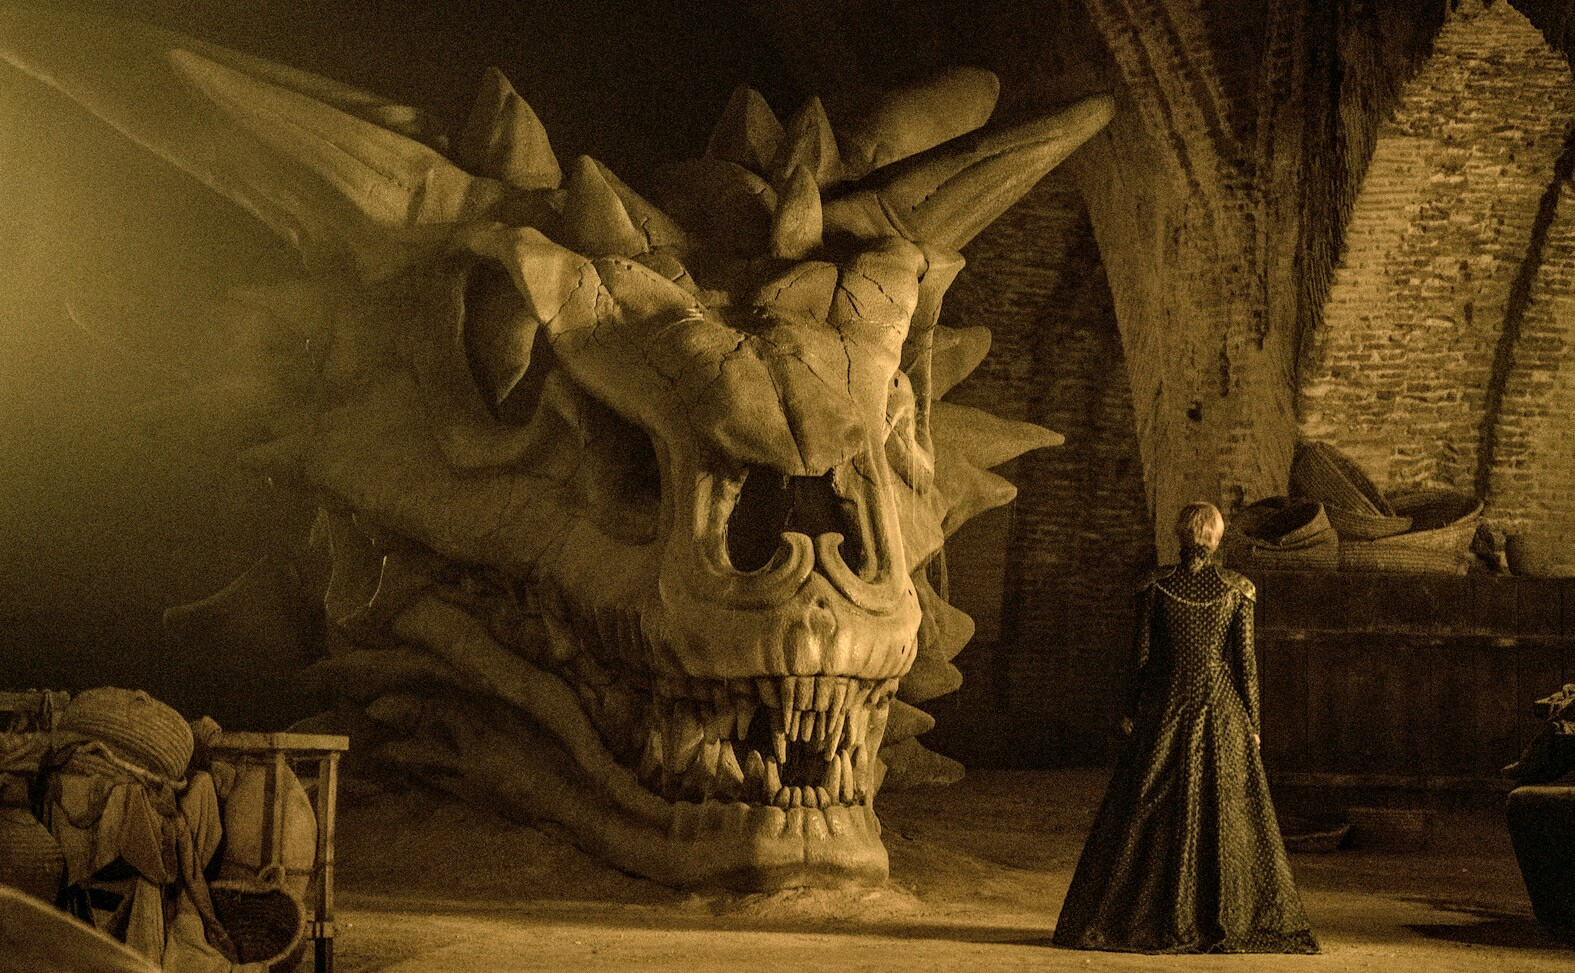 Witness The Creation Of The Dragon Skull For Stormborn And The Evolution Of Dragon Vfx From Season 1 To 7 Watchers On The Wall A Game Of Thrones Community For Dragon skull, russell dongjun lu. dragon skull for stormborn